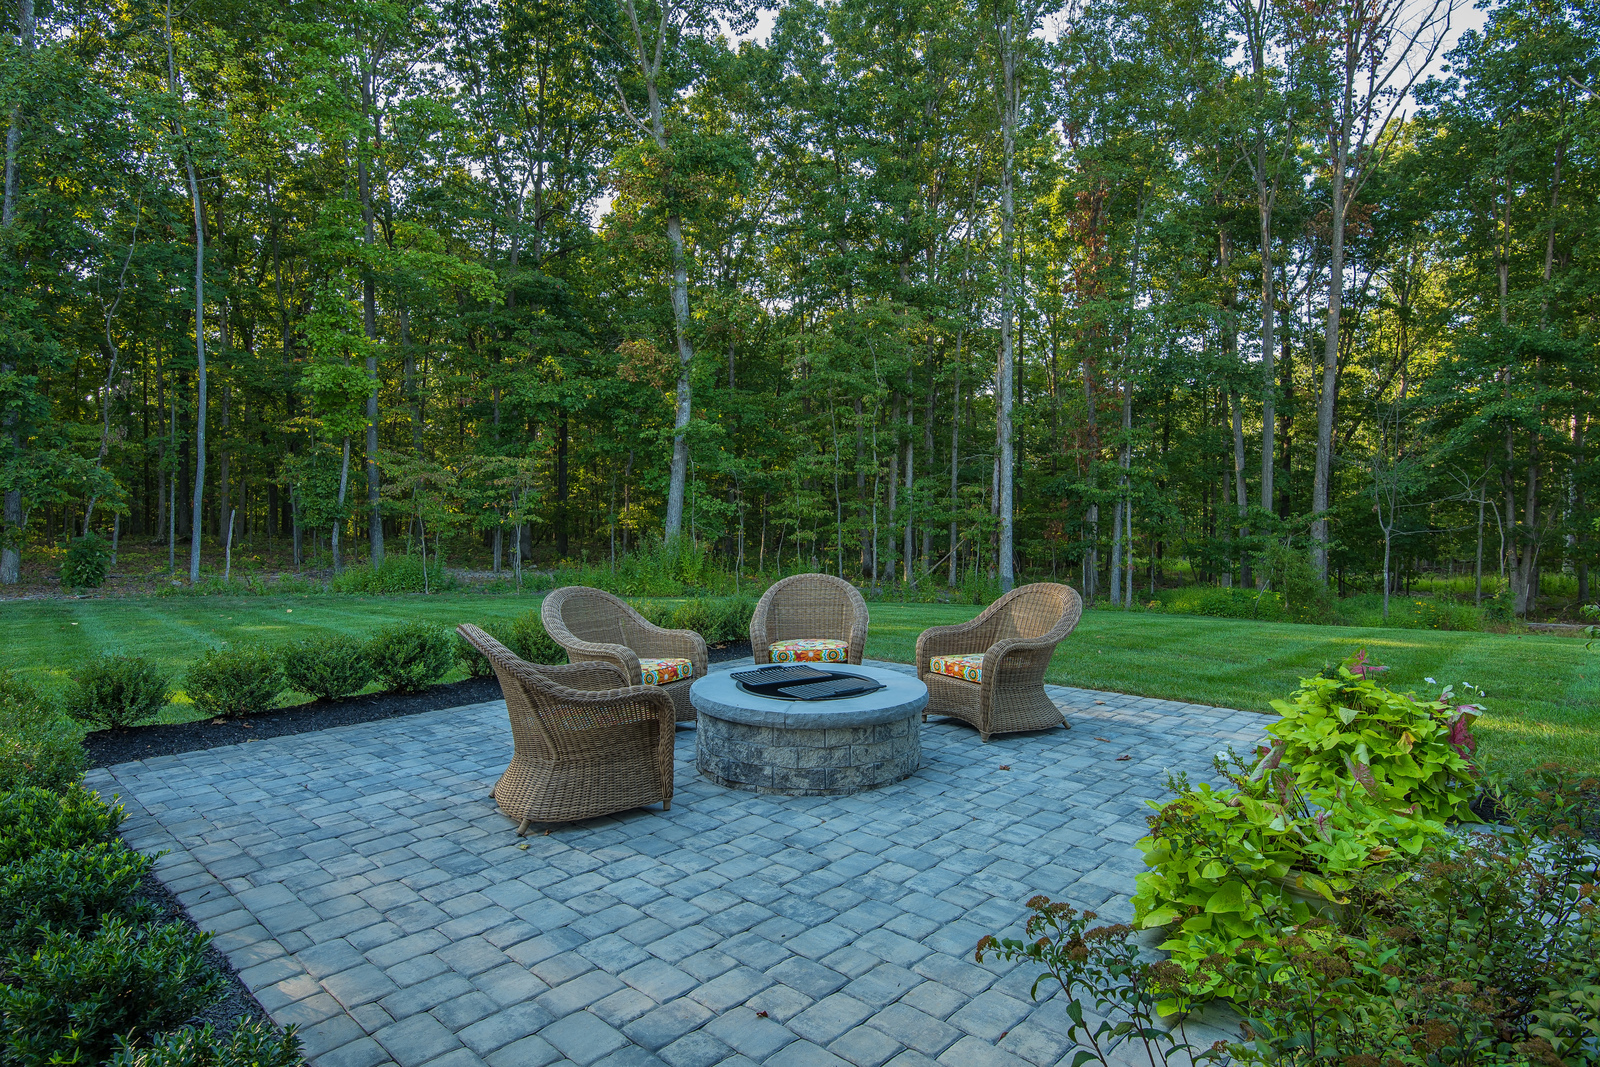 new homes for sale at ashwood park in naperville il within the